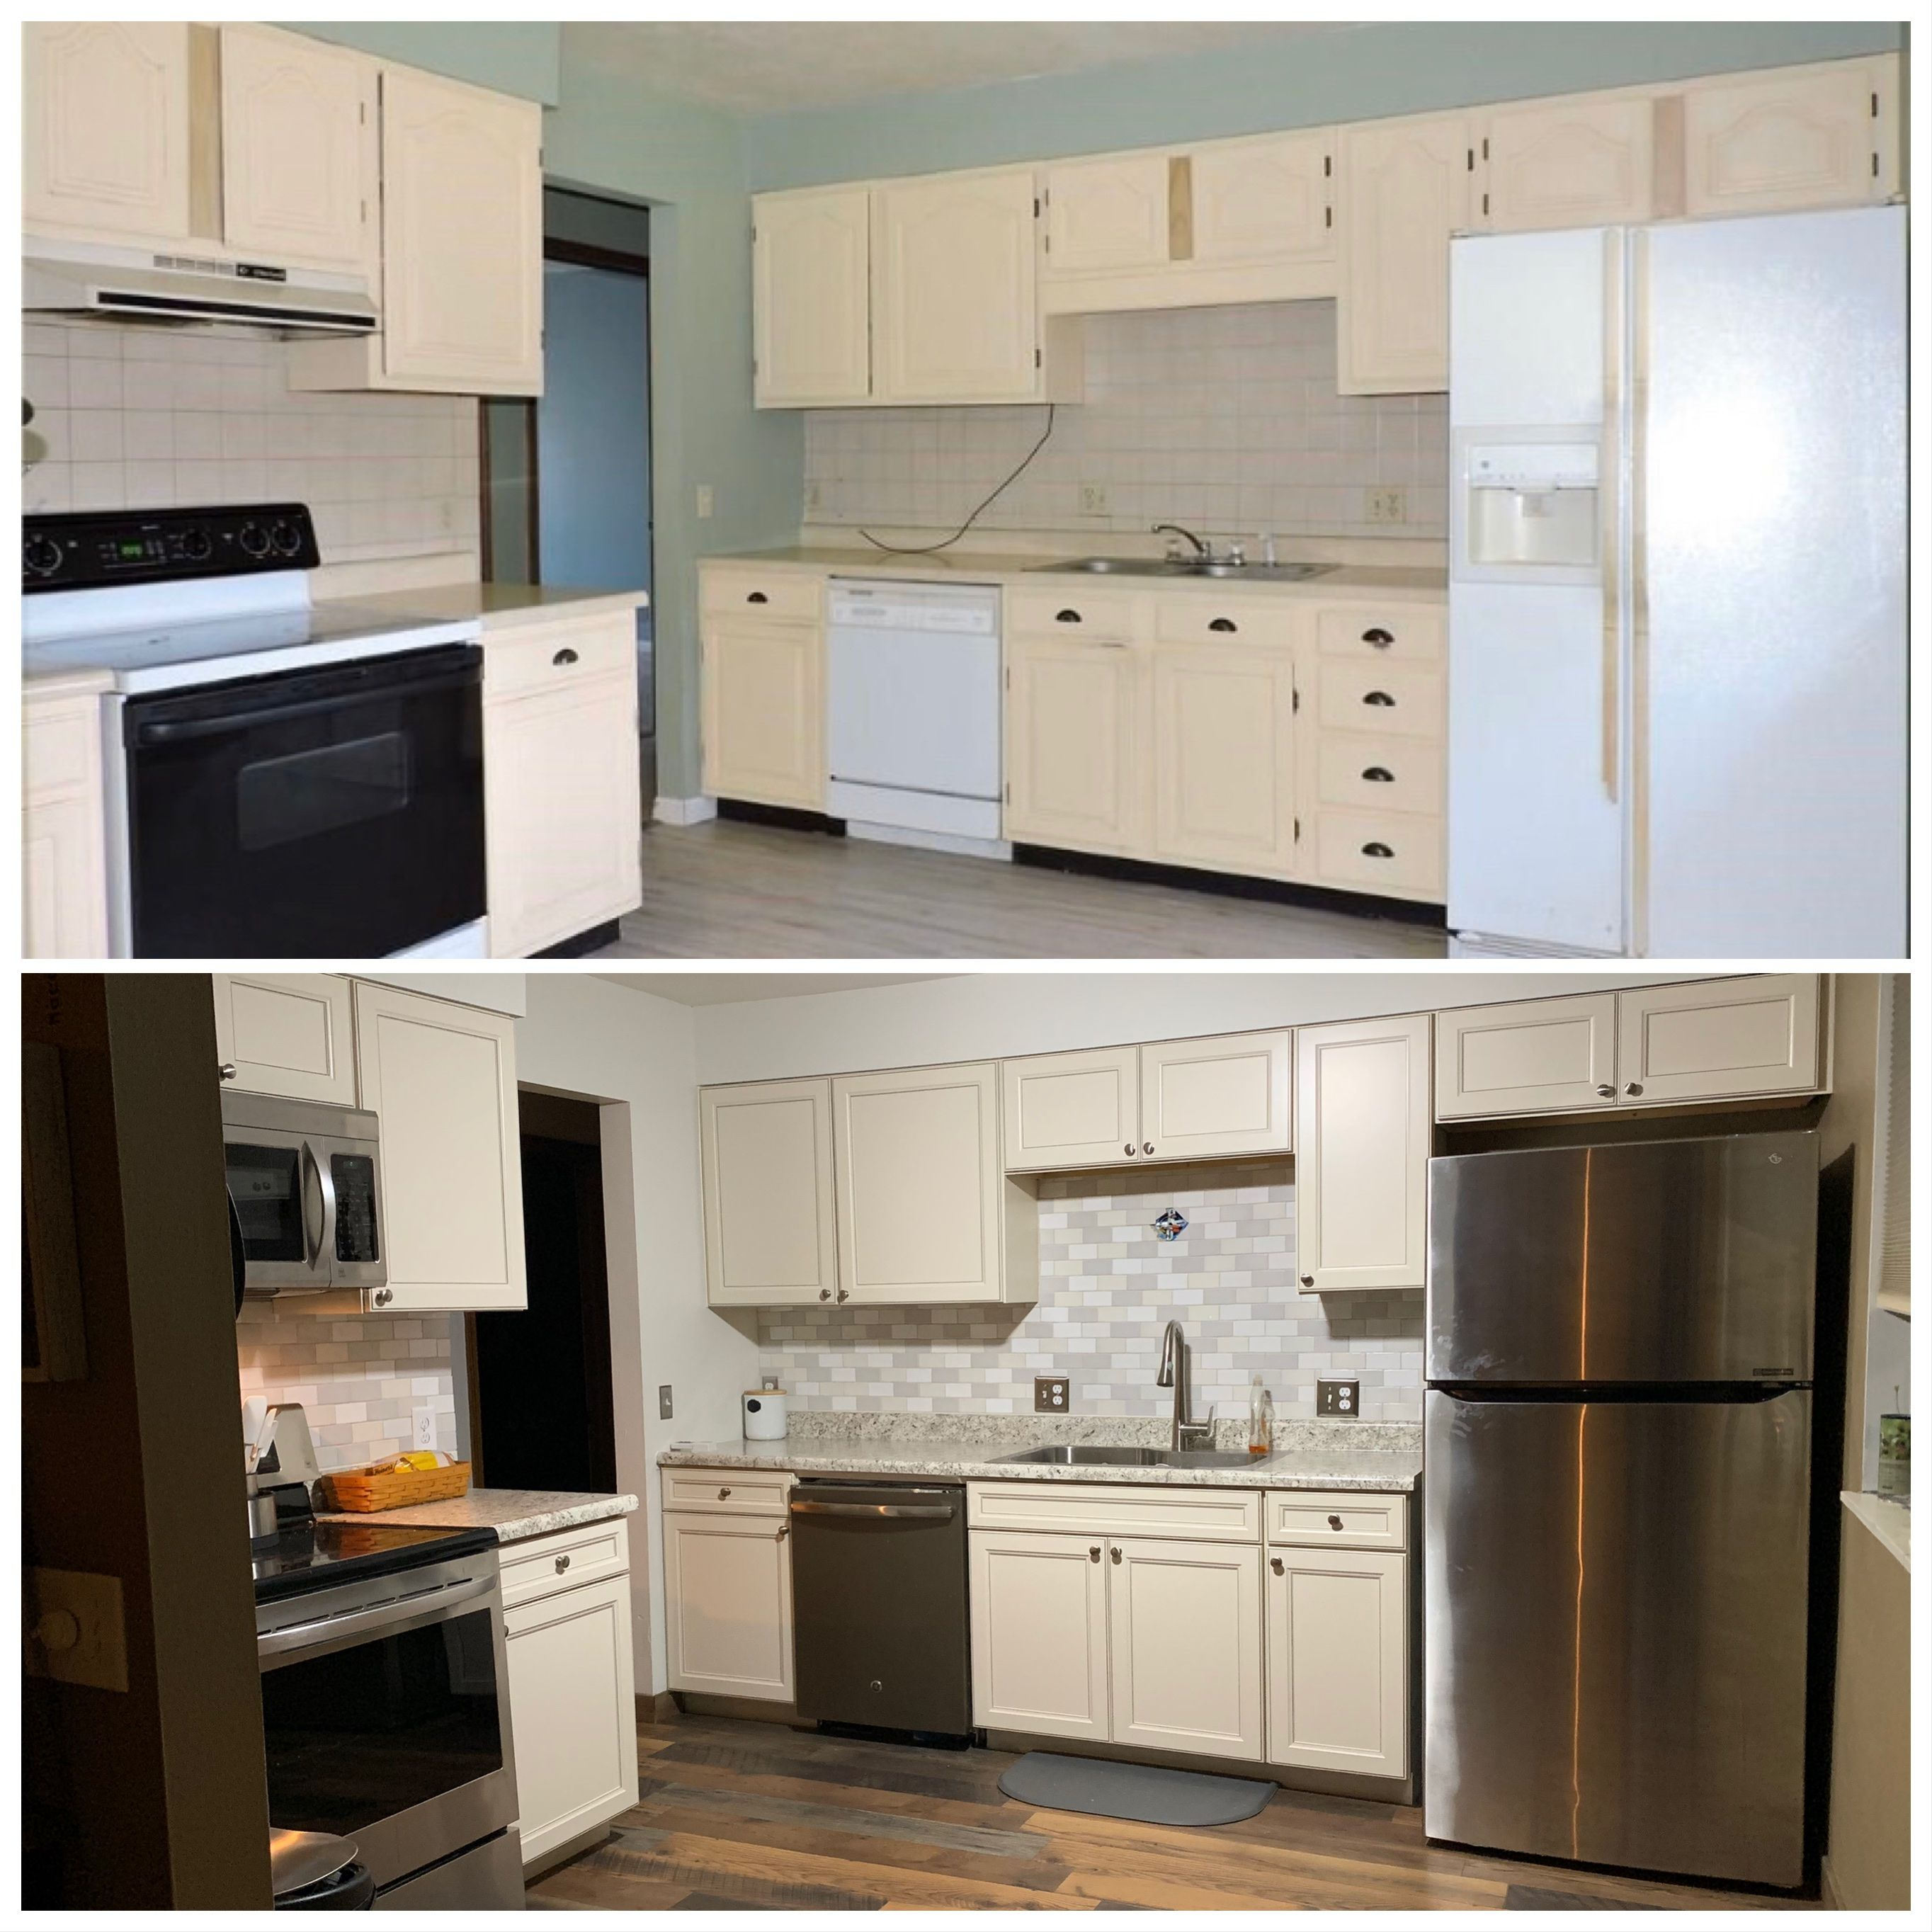 Before After Kitchen Remodel Diamond Now Caspian Cabinets Lg Stainless Steel Appliances New Backsplash Before After Kitchen Kitchen Remodel Pergo Flooring